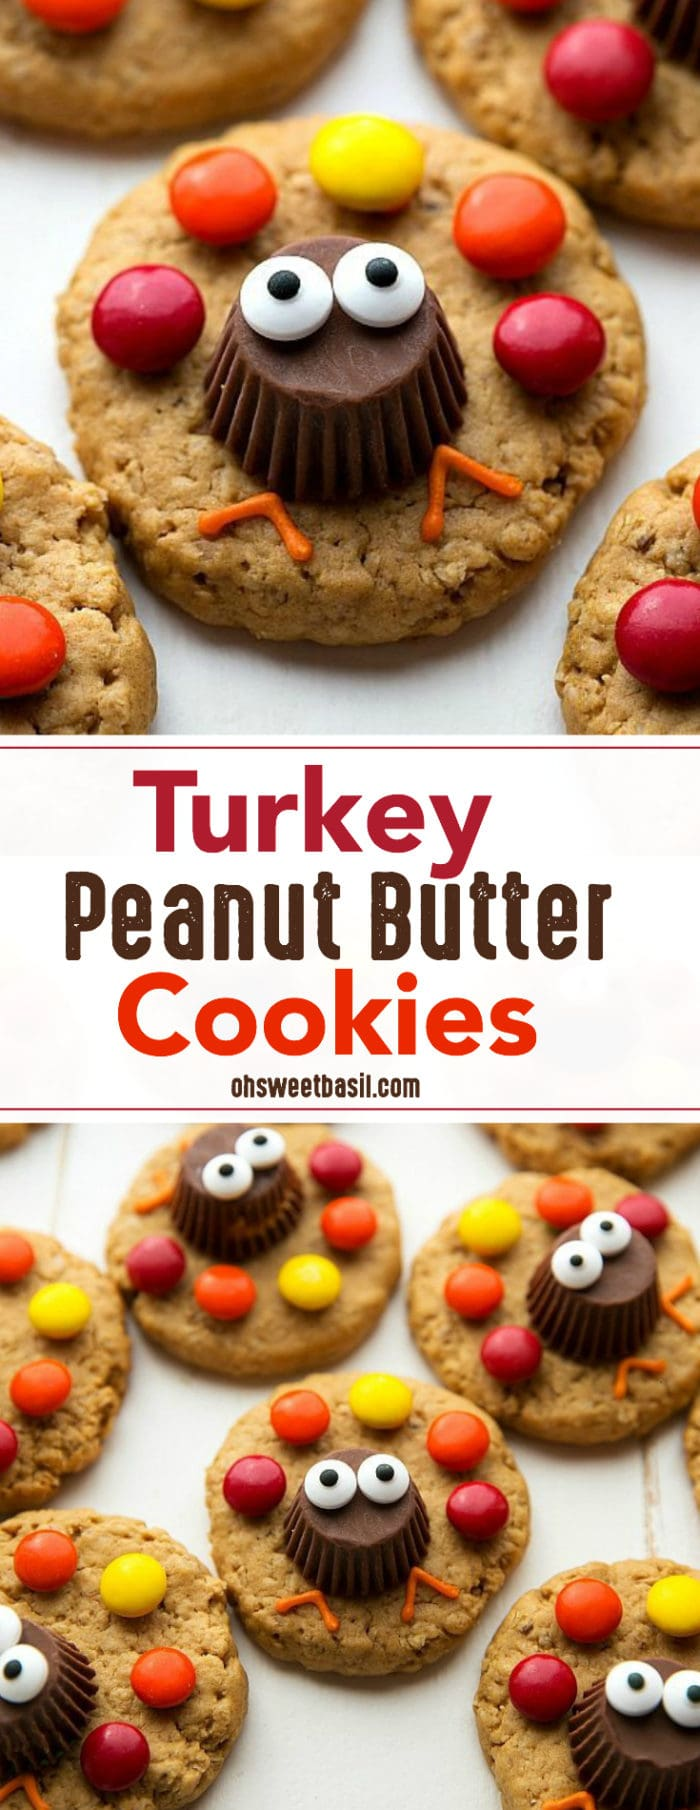 A pan of turkey peanut butter cookies with M&M's and Reese's Peanut Butter Cups